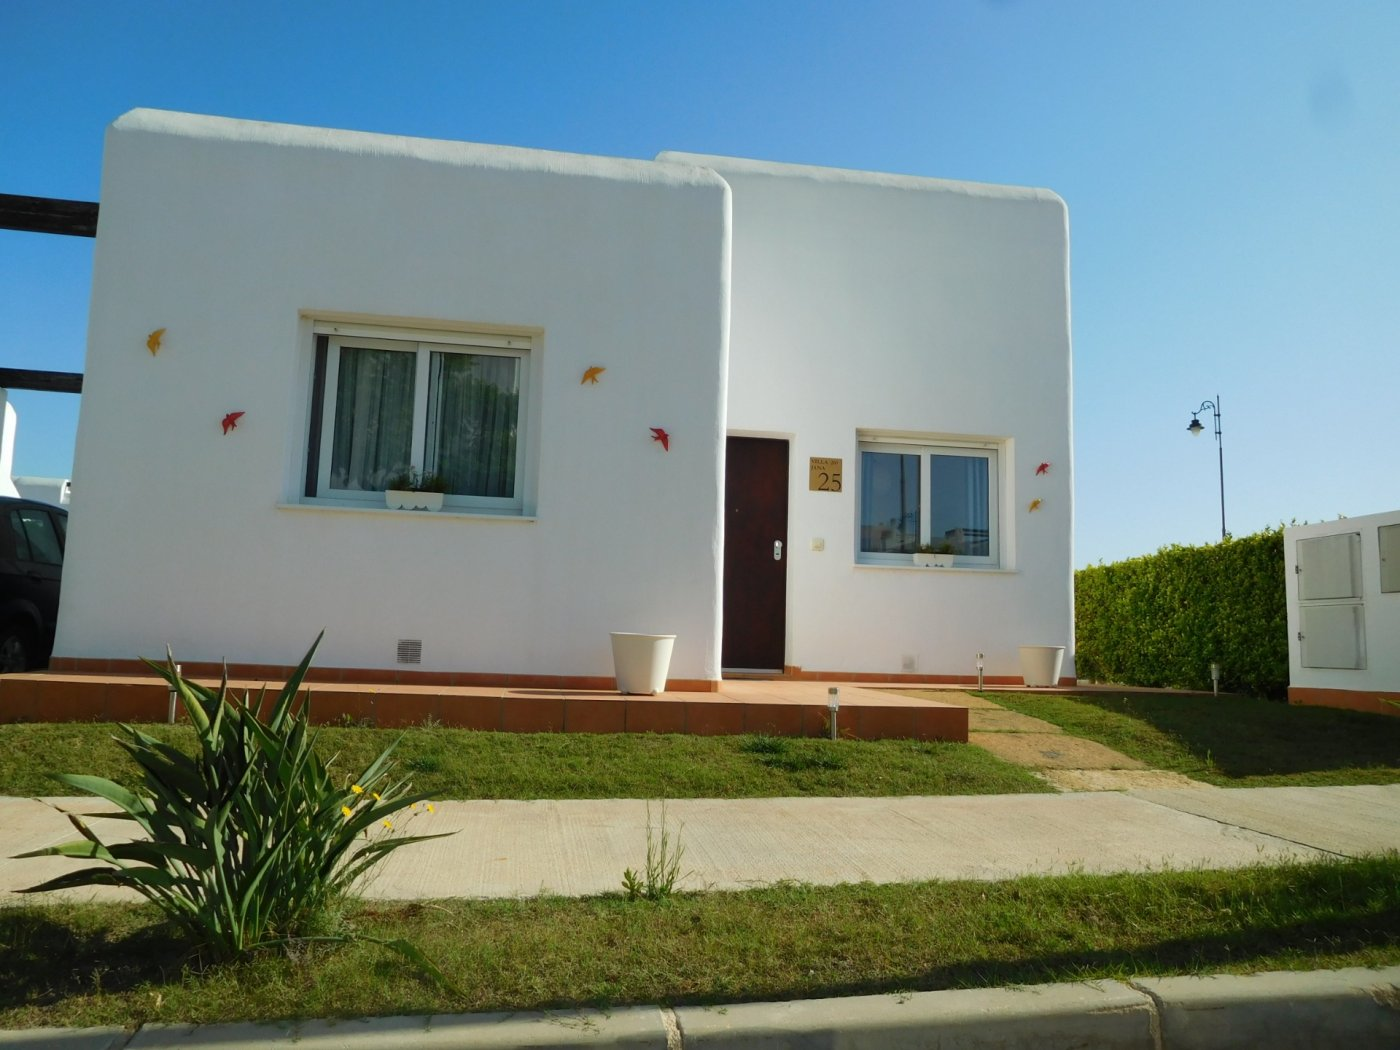 Gallery Image 2 of Casa For rent in Condado De Alhama, Alhama De Murcia With Pool